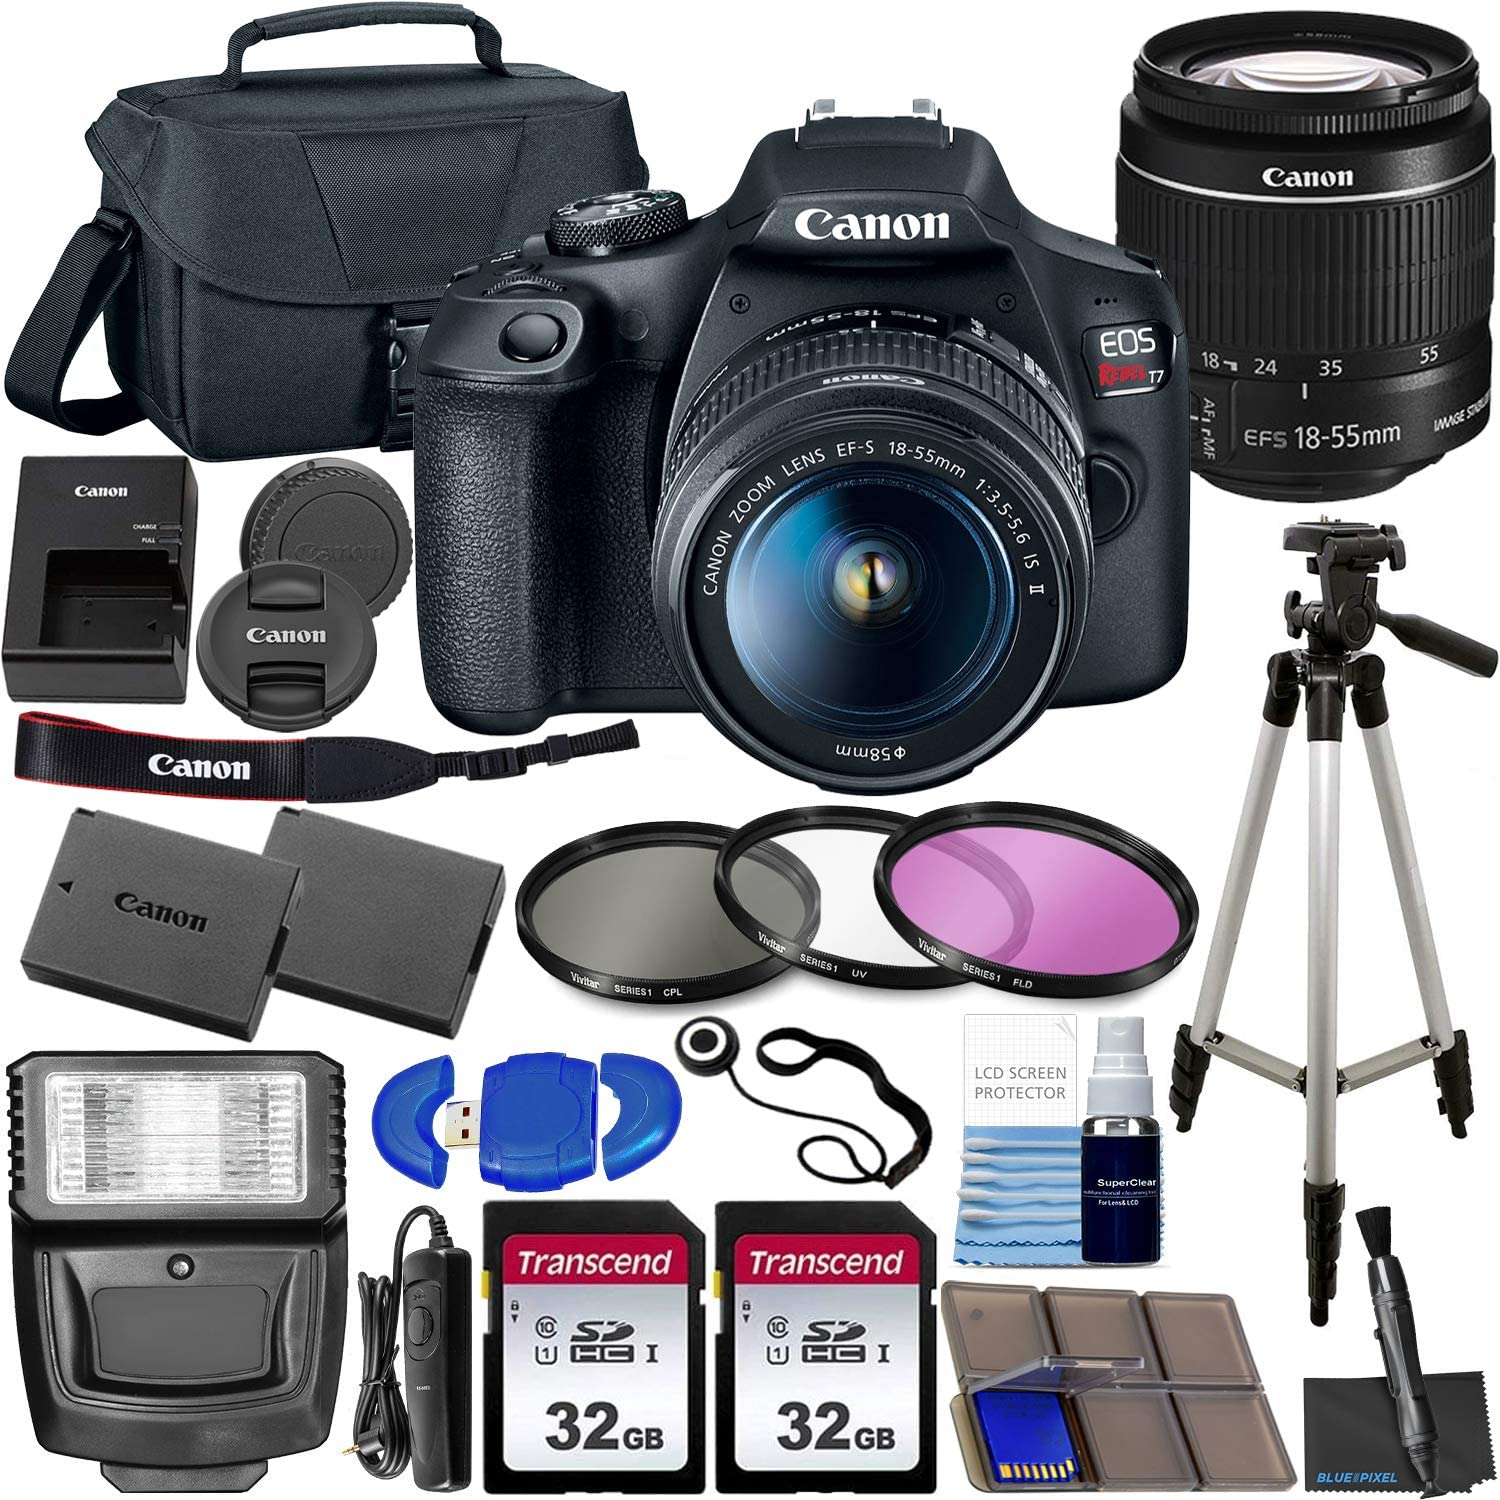 Canon EOS Rebel T7 DSLR Camera Bundle with Canon EF-S 18-55mm f/3.5-5.6 is II Lens & Ultimate Accessory Bundle – Includes: 2X 32GB SDHC Memory Card, Extended Life Battery, Case, Filters & More